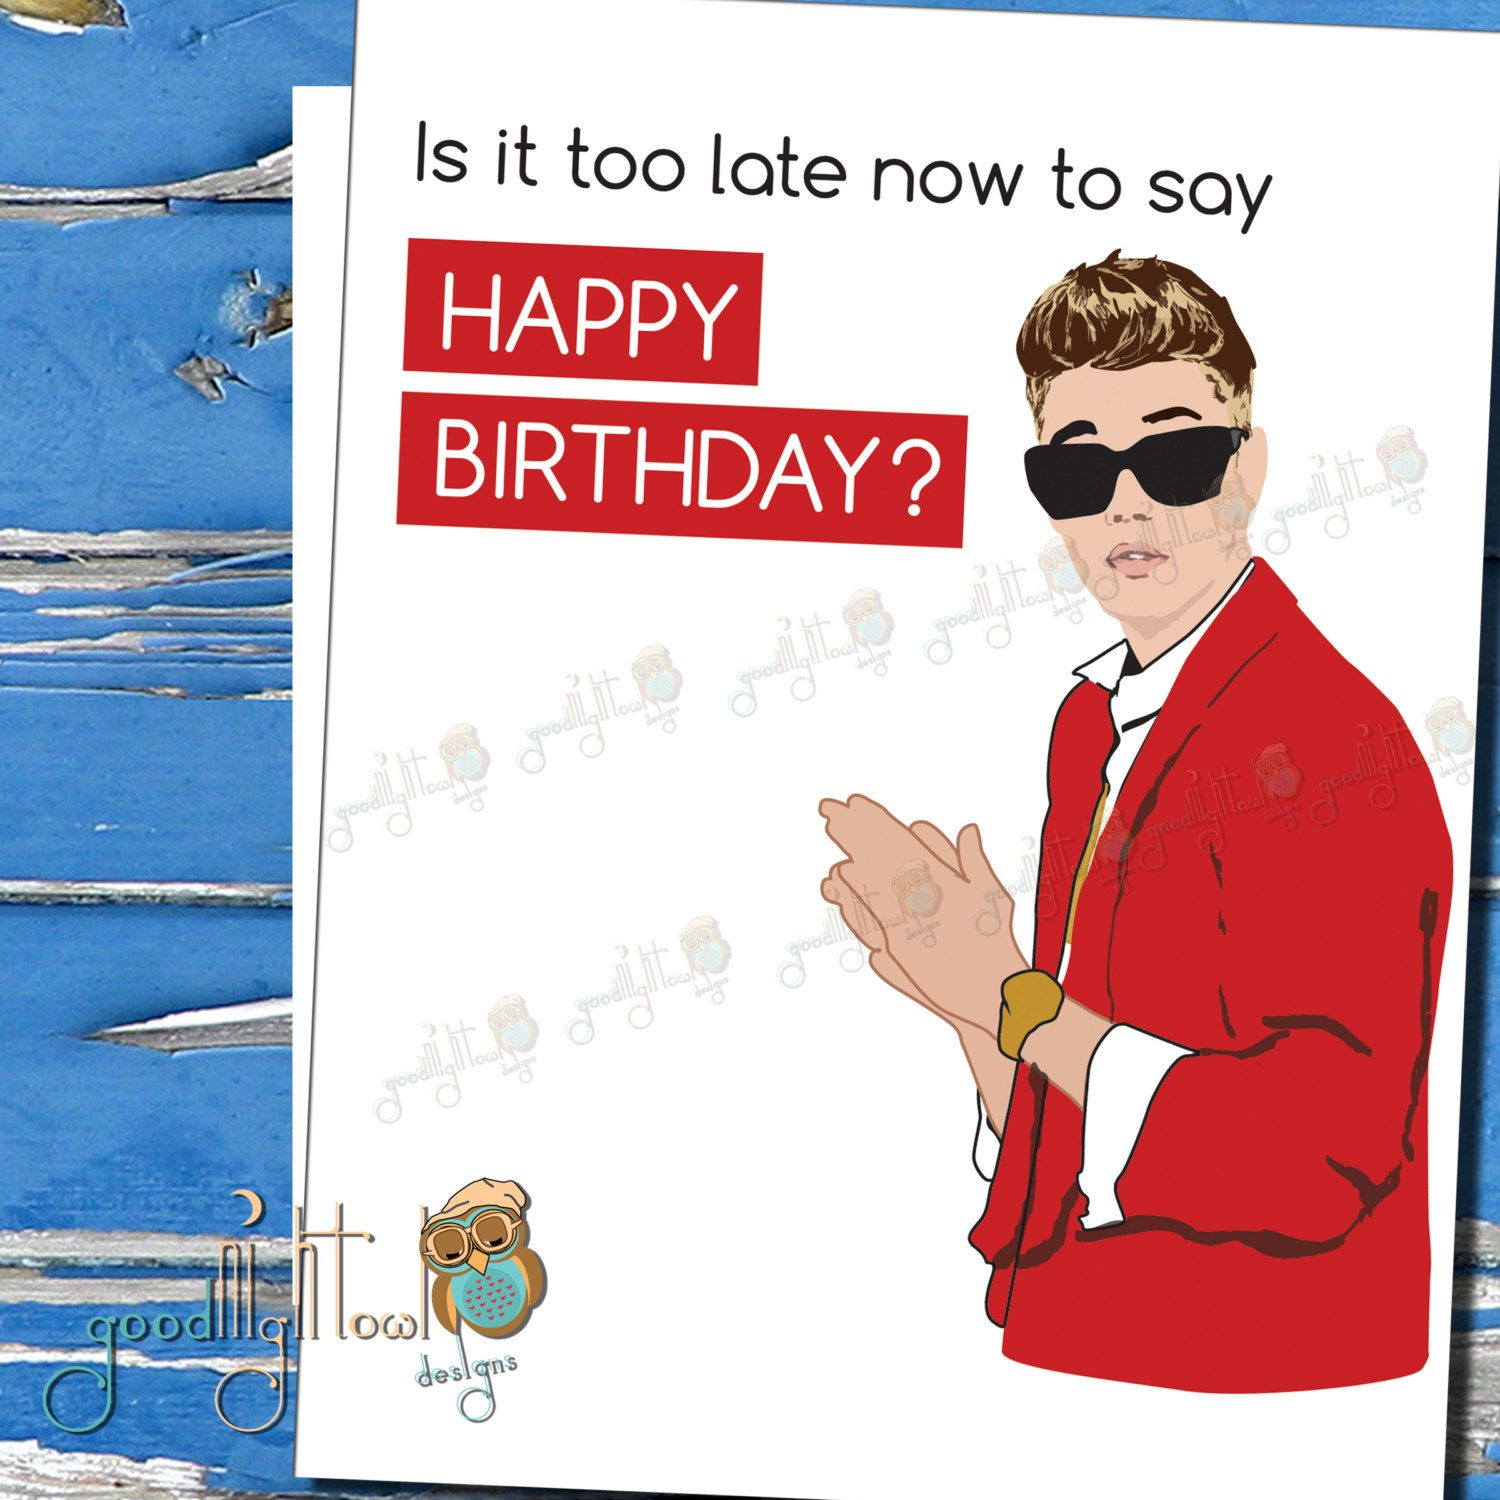 Funny Belated Birthday Card Justin Bieber Is It Too Late Now To Say Happy Boyfriend Girlfriend 700 USD By GNODpop